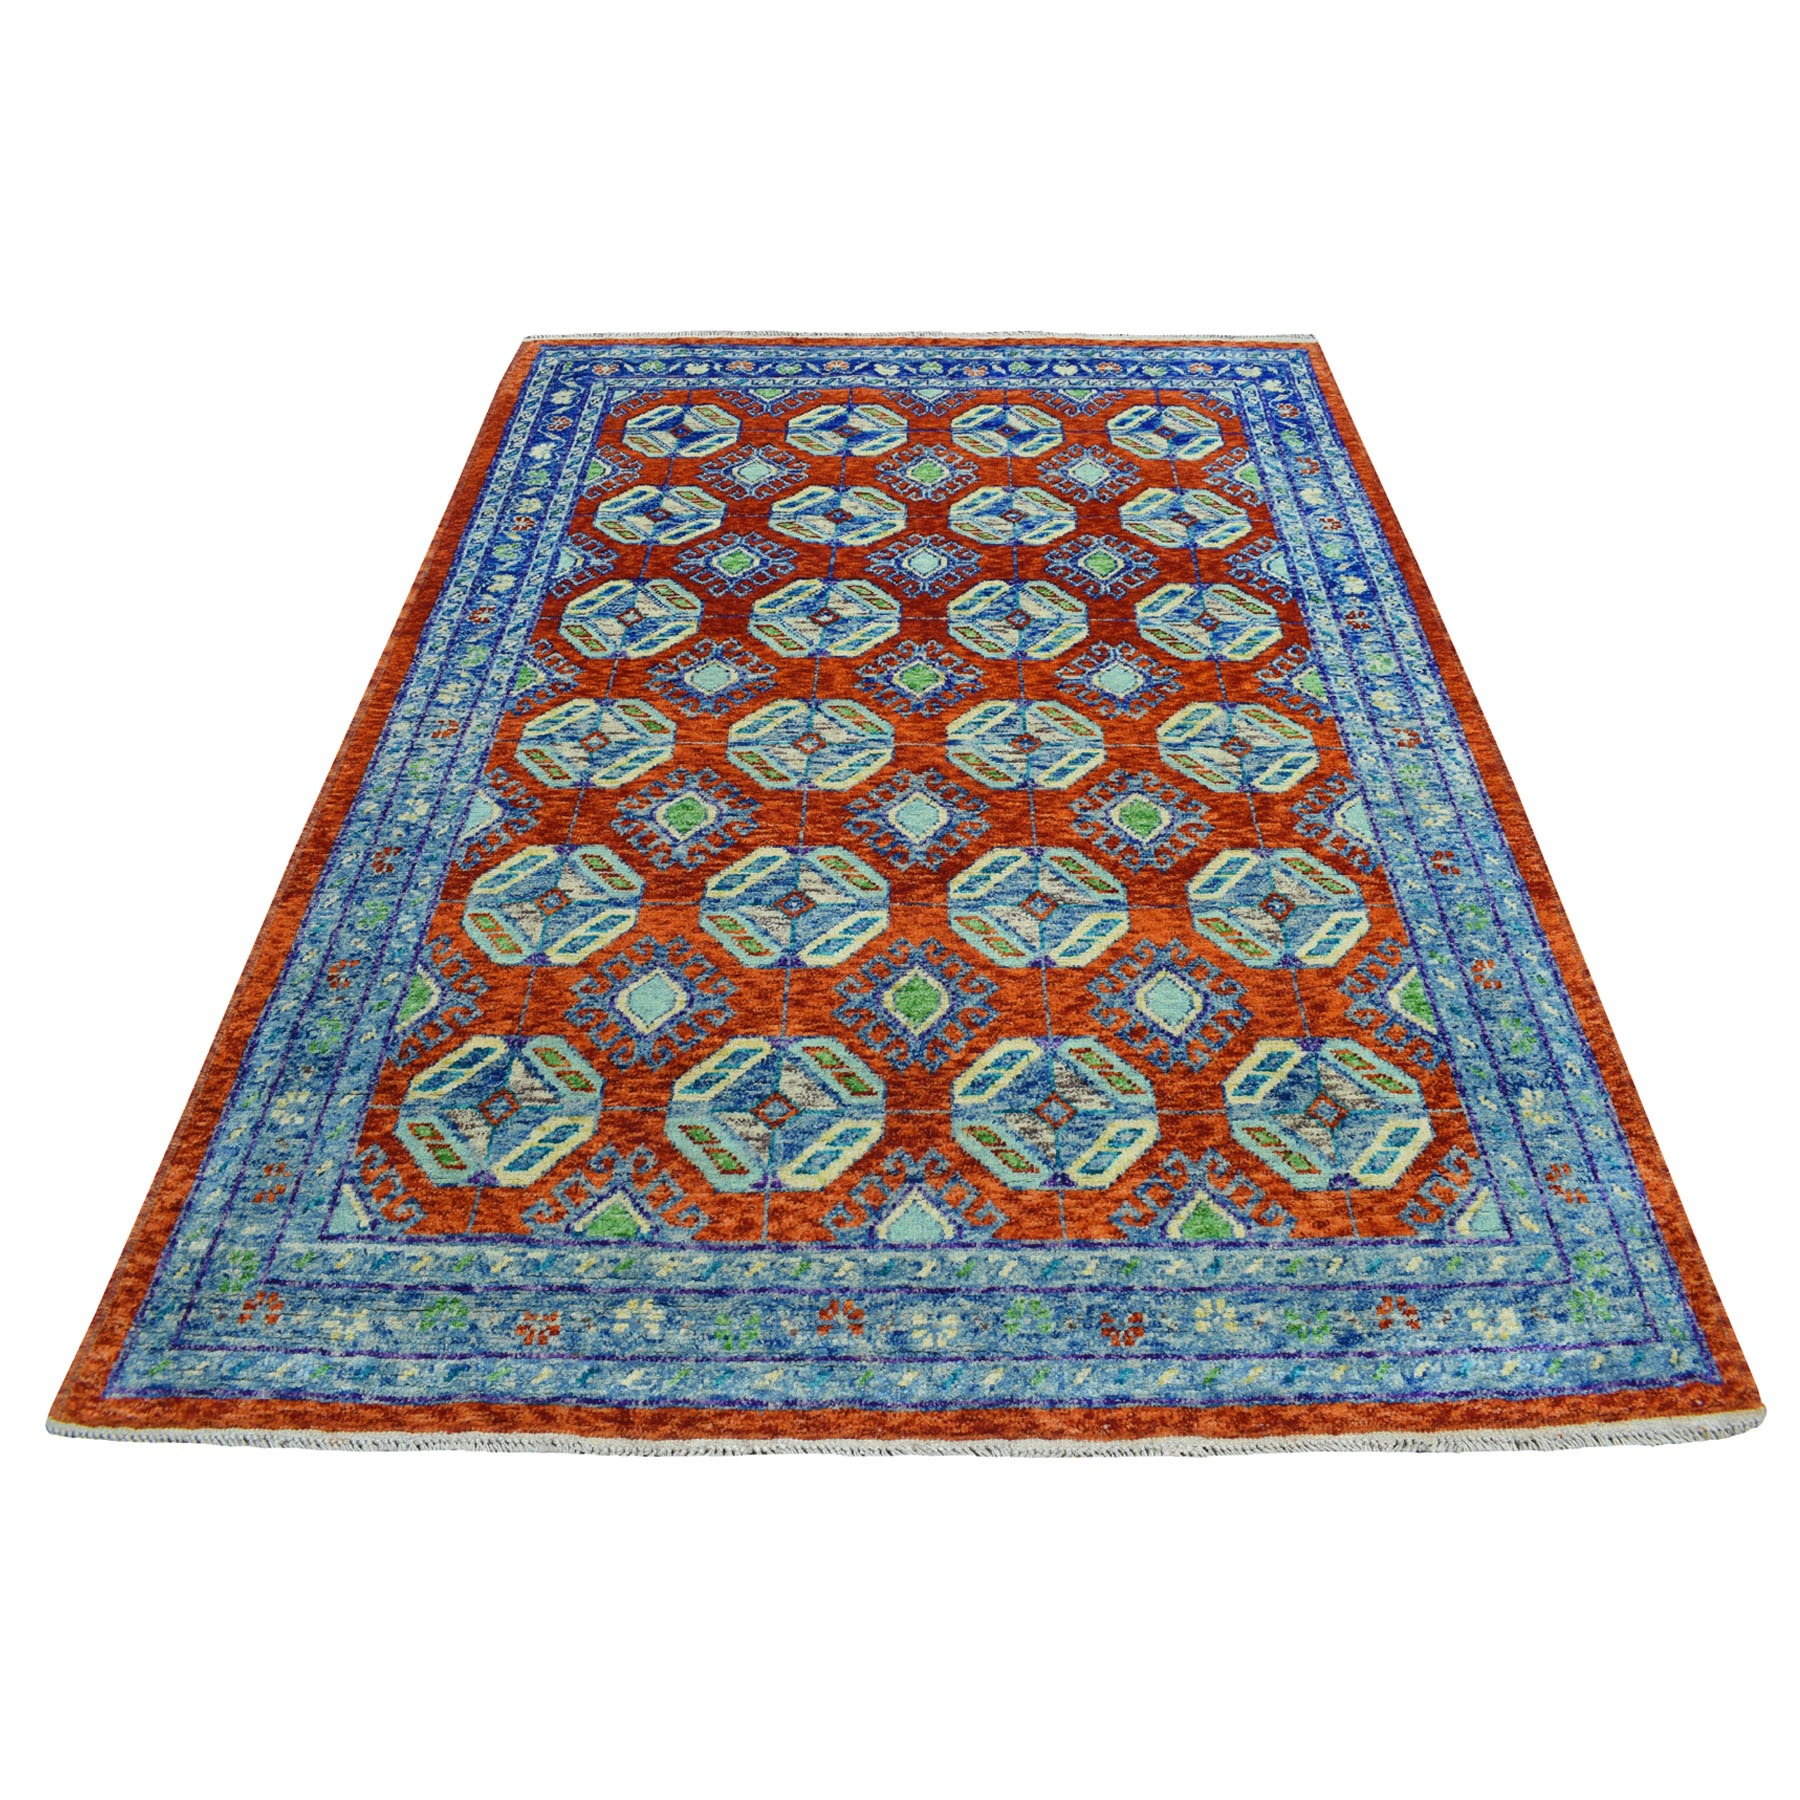 "5'10""x8' Orange Colorful Afghan Baluch Geometric Design Hand Knotted 100% Wool Oriental Rug"